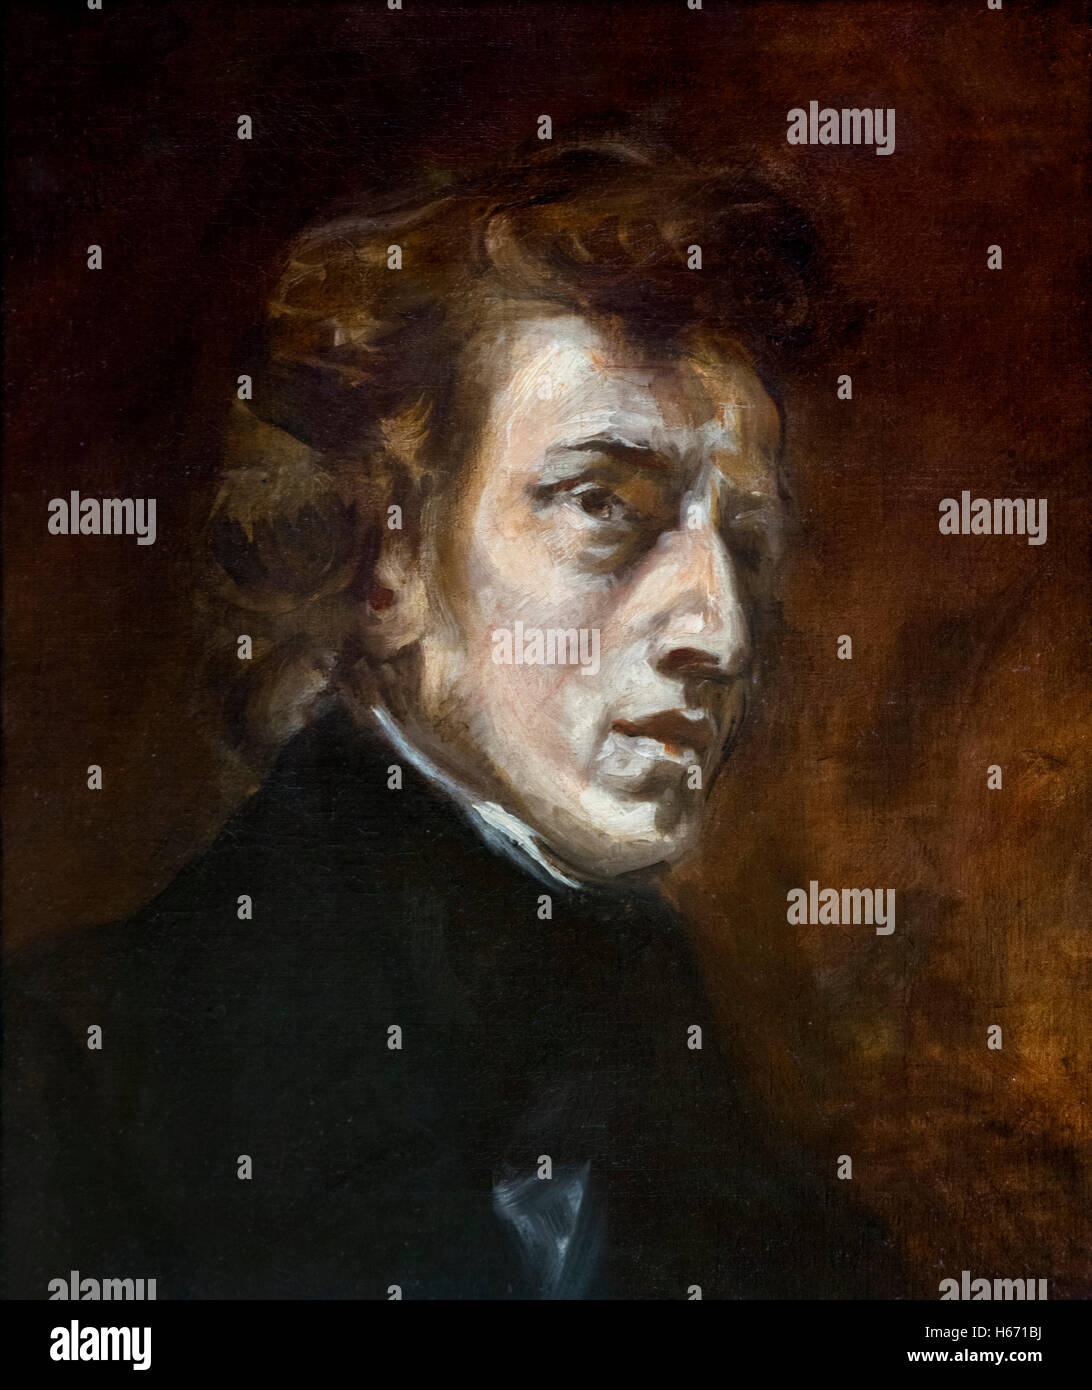 Chopin. Portrait of the Polish composer and pianist, Frédéric Chopin (1810-1849) by Eugène Delacroix, - Stock Image